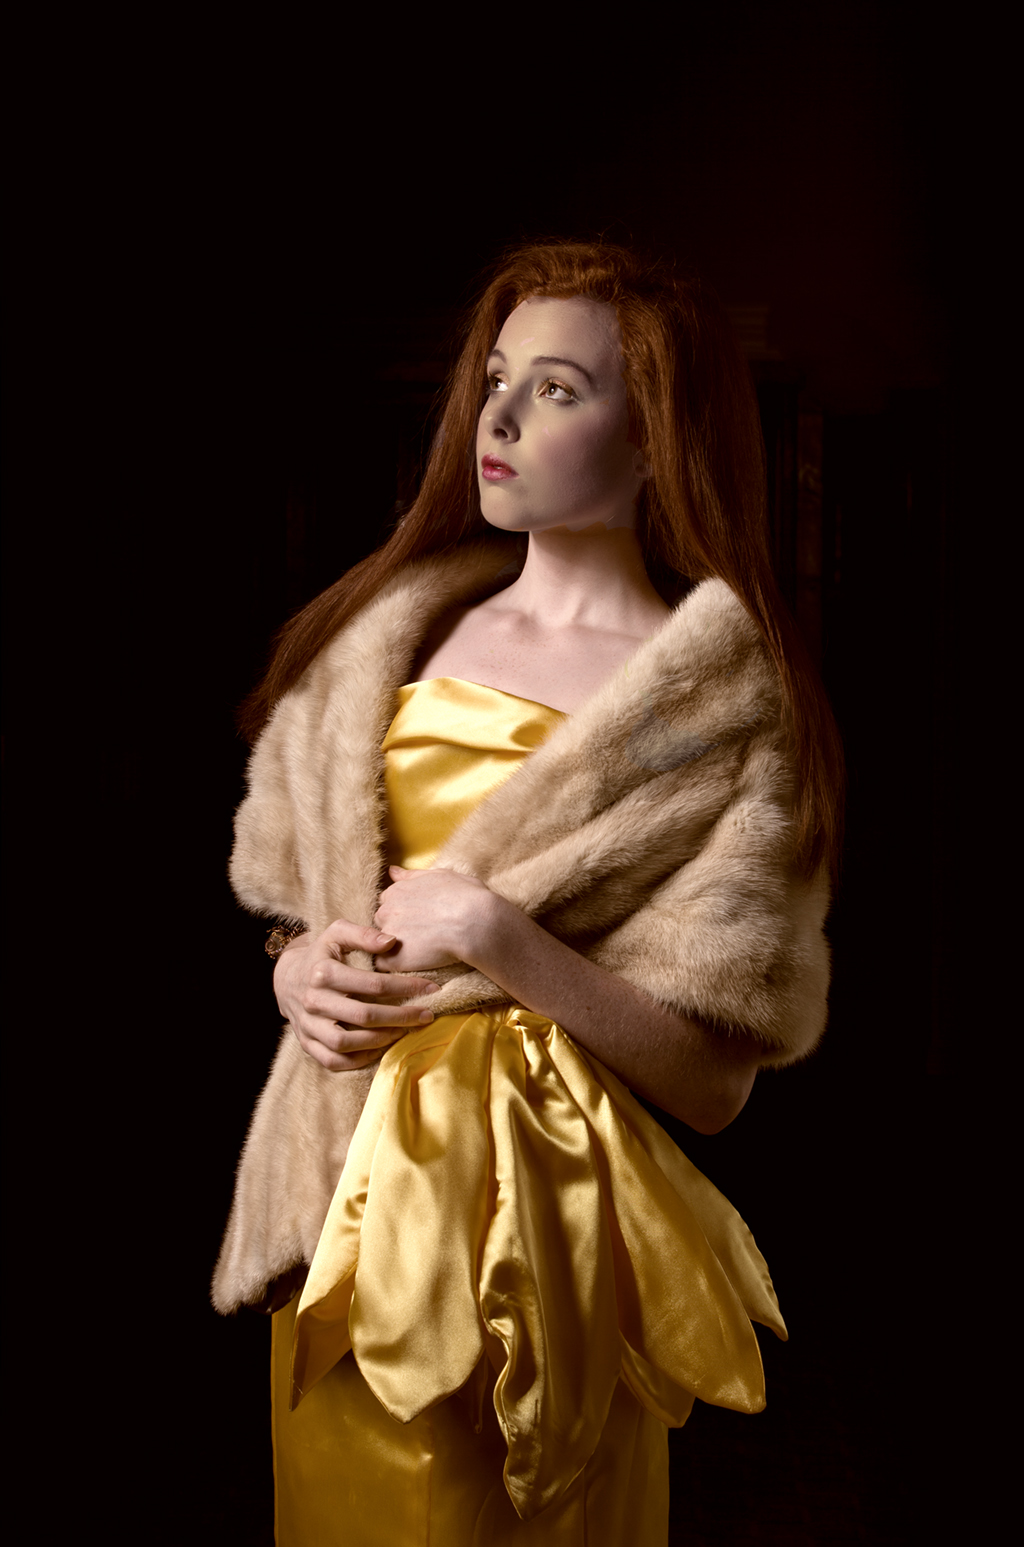 fur stole complements the luxurious gold fall of the dress and the red of the models hair